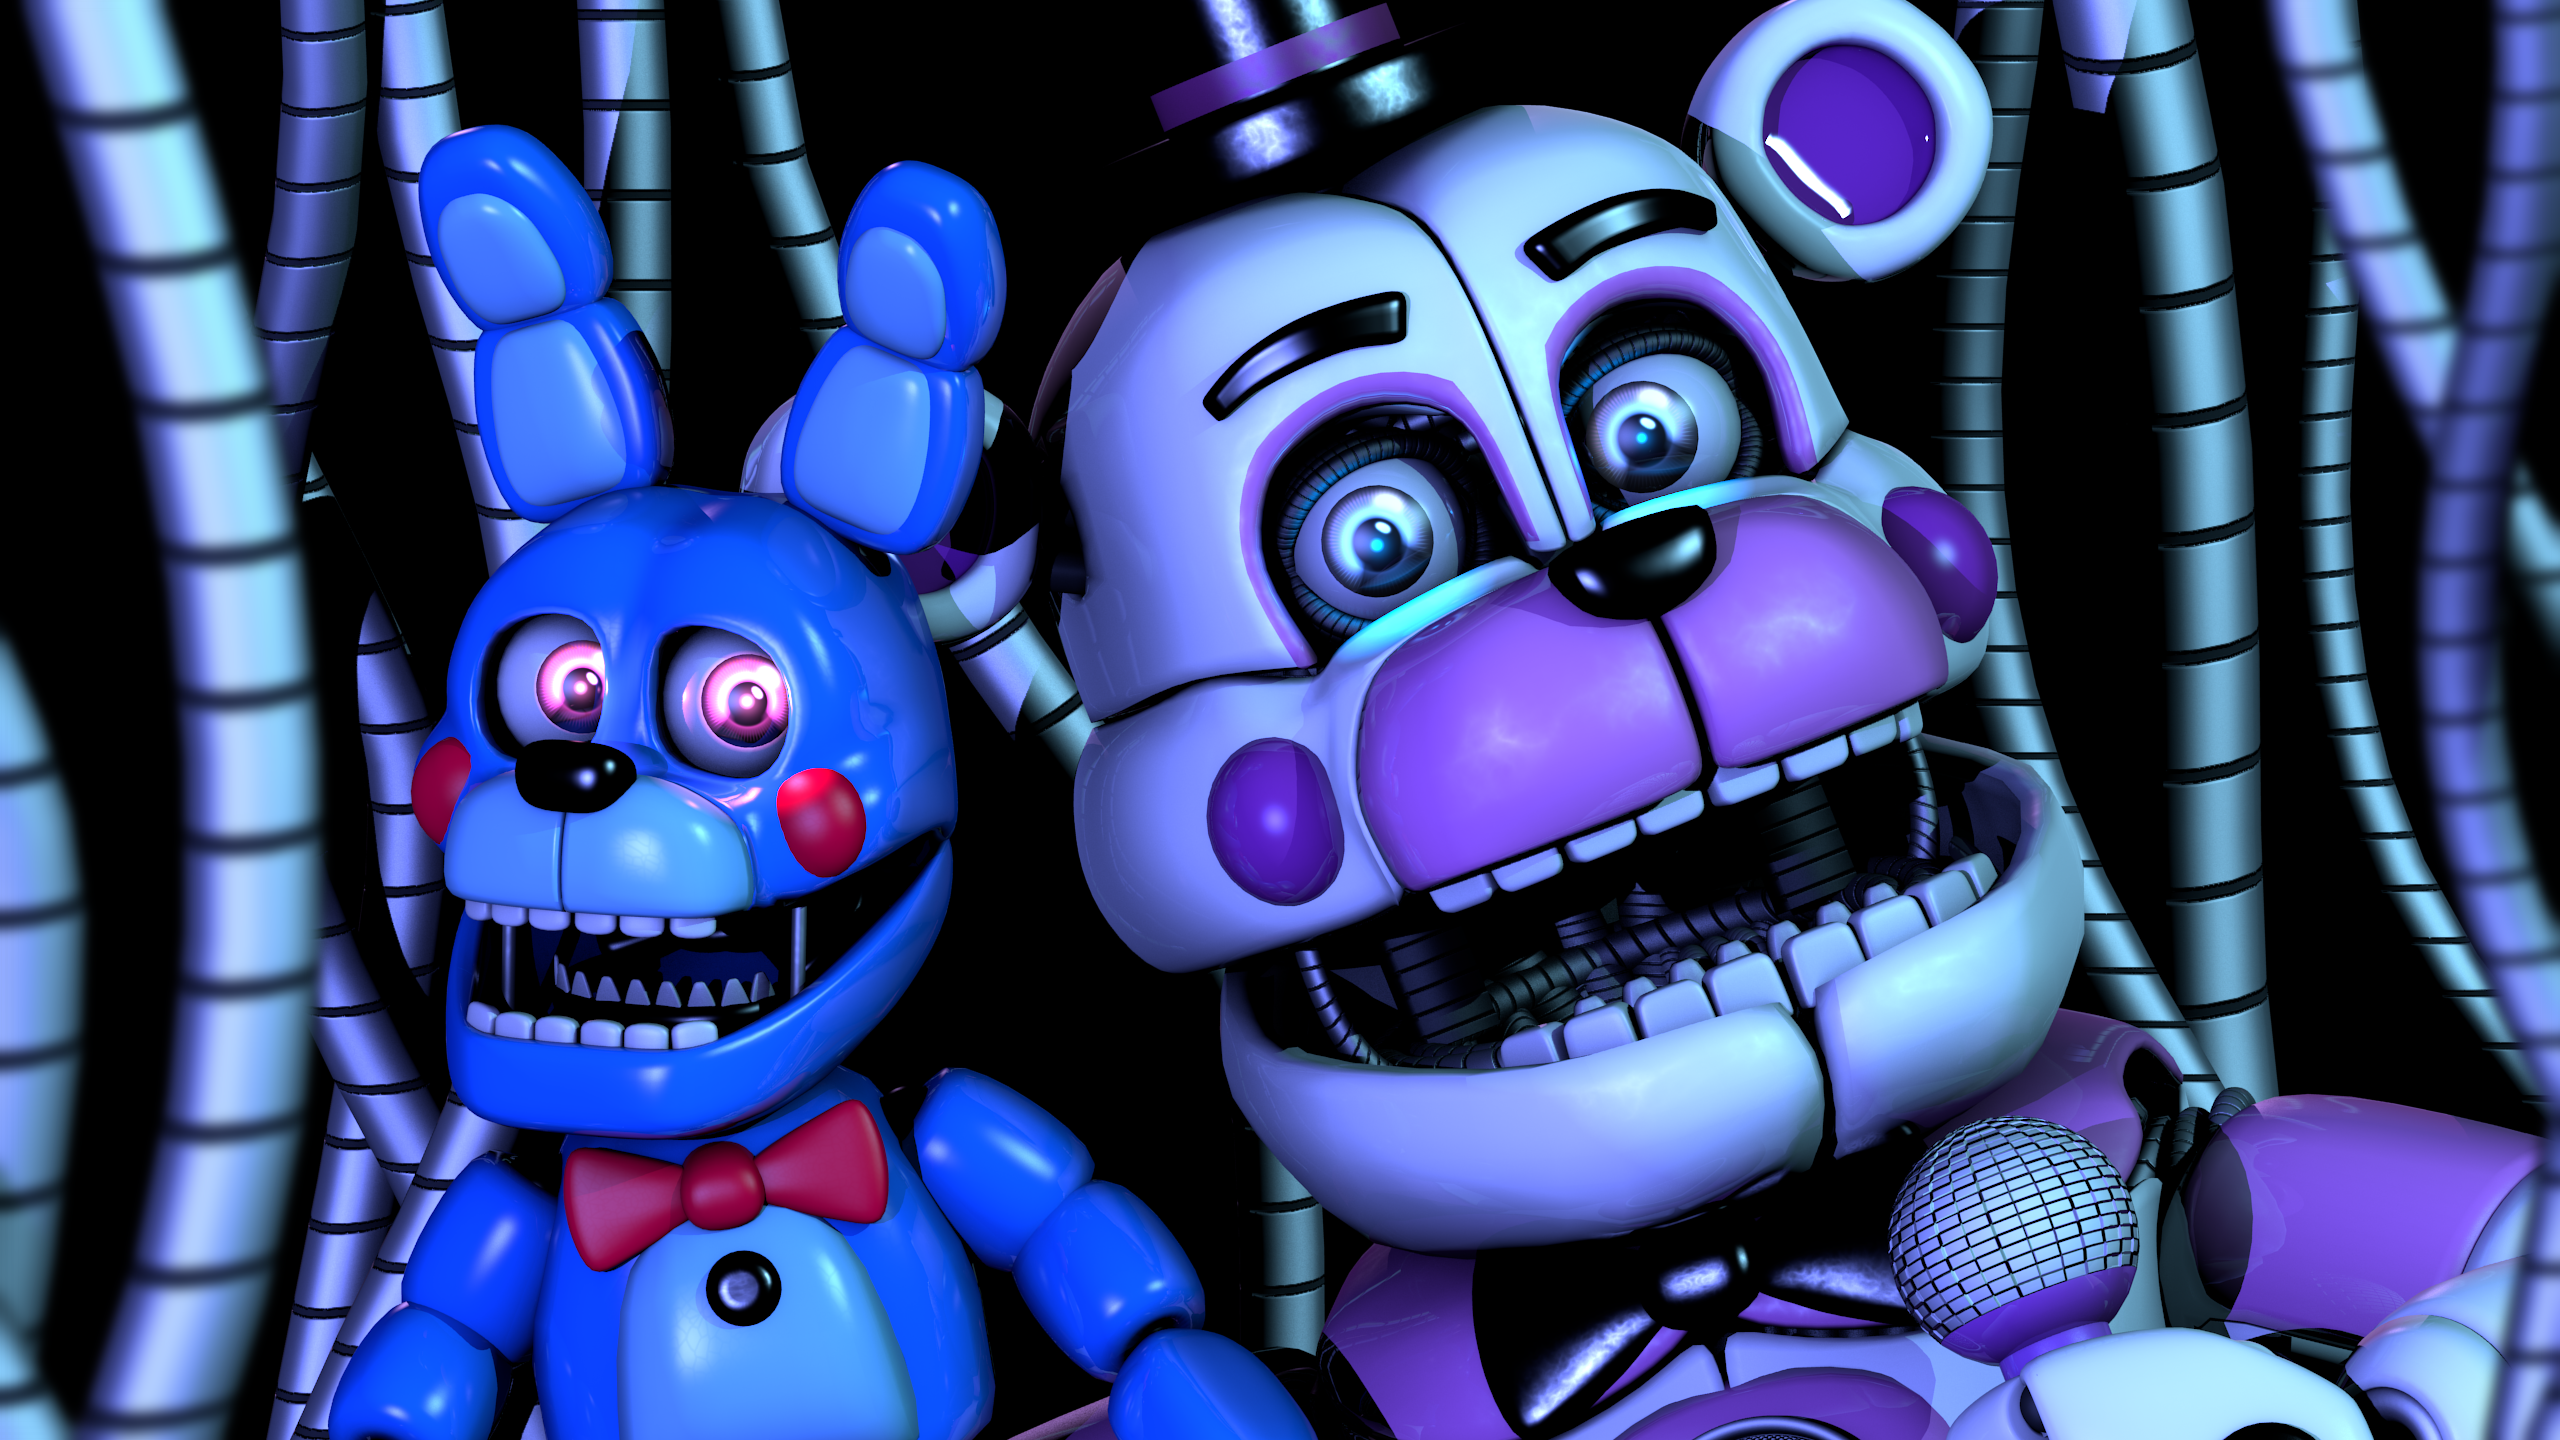 Five Nights At Freddy Good For Kids